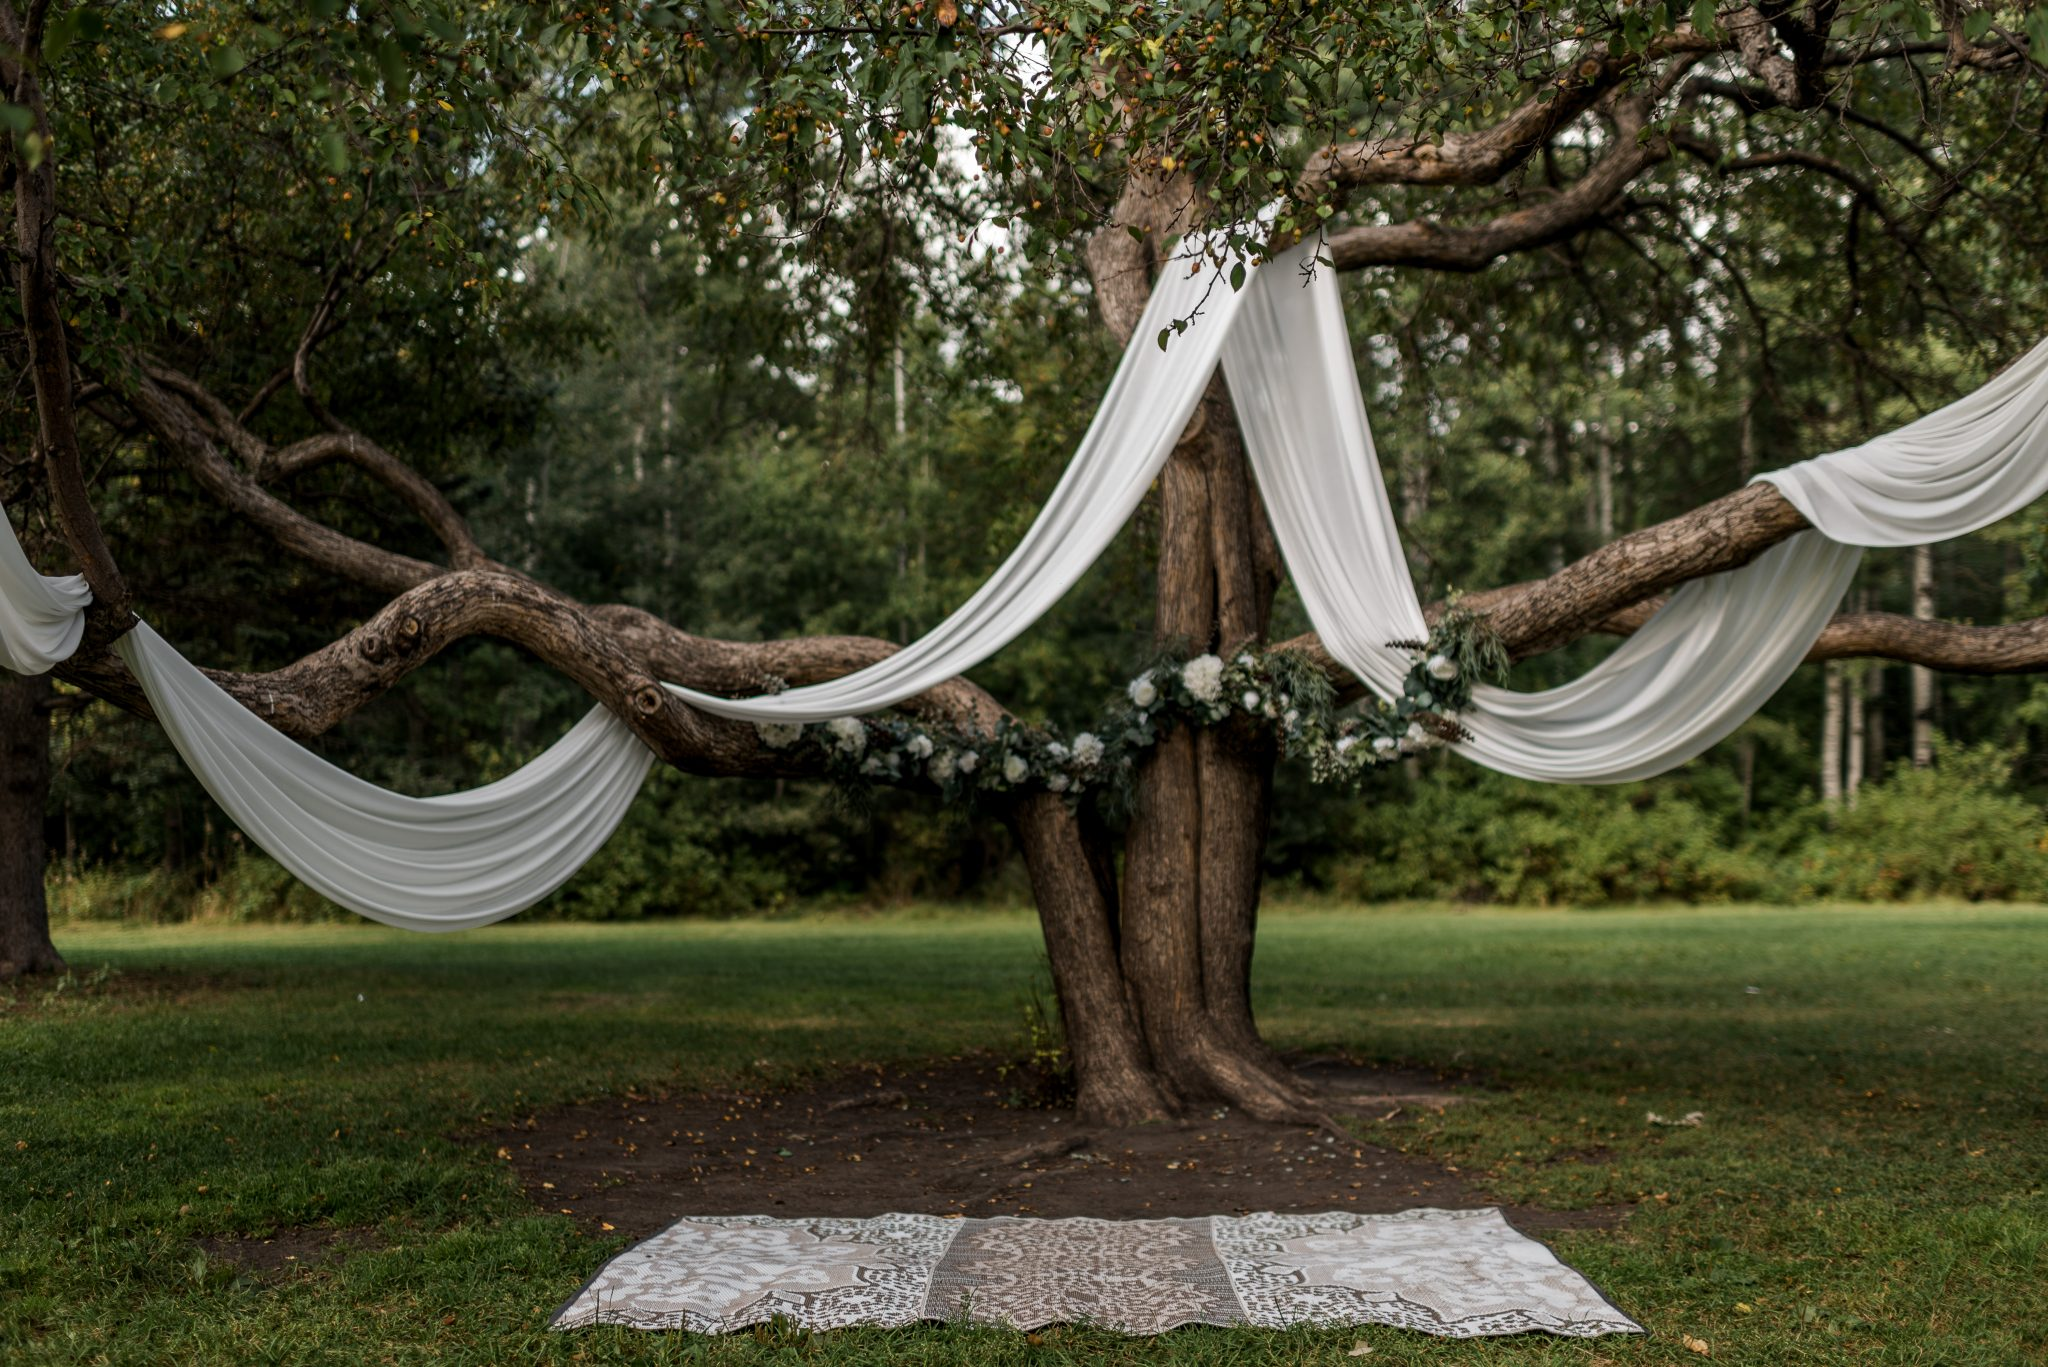 Romantic ceremony installation and decor set up in Hawrelak Park under a tree